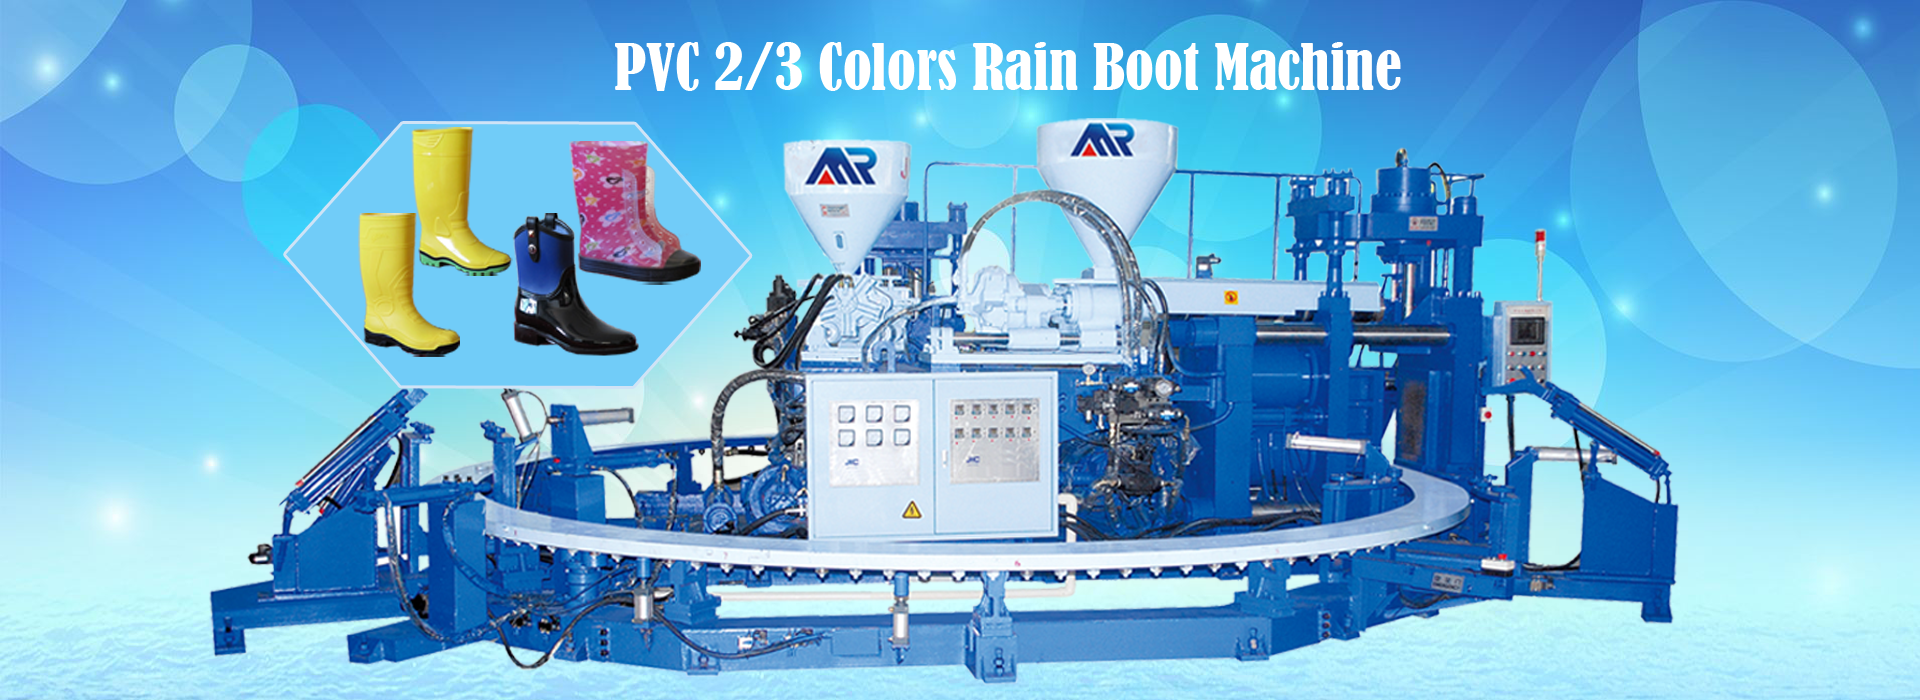 MR-614A Two Color PVC Boot Injection Machine